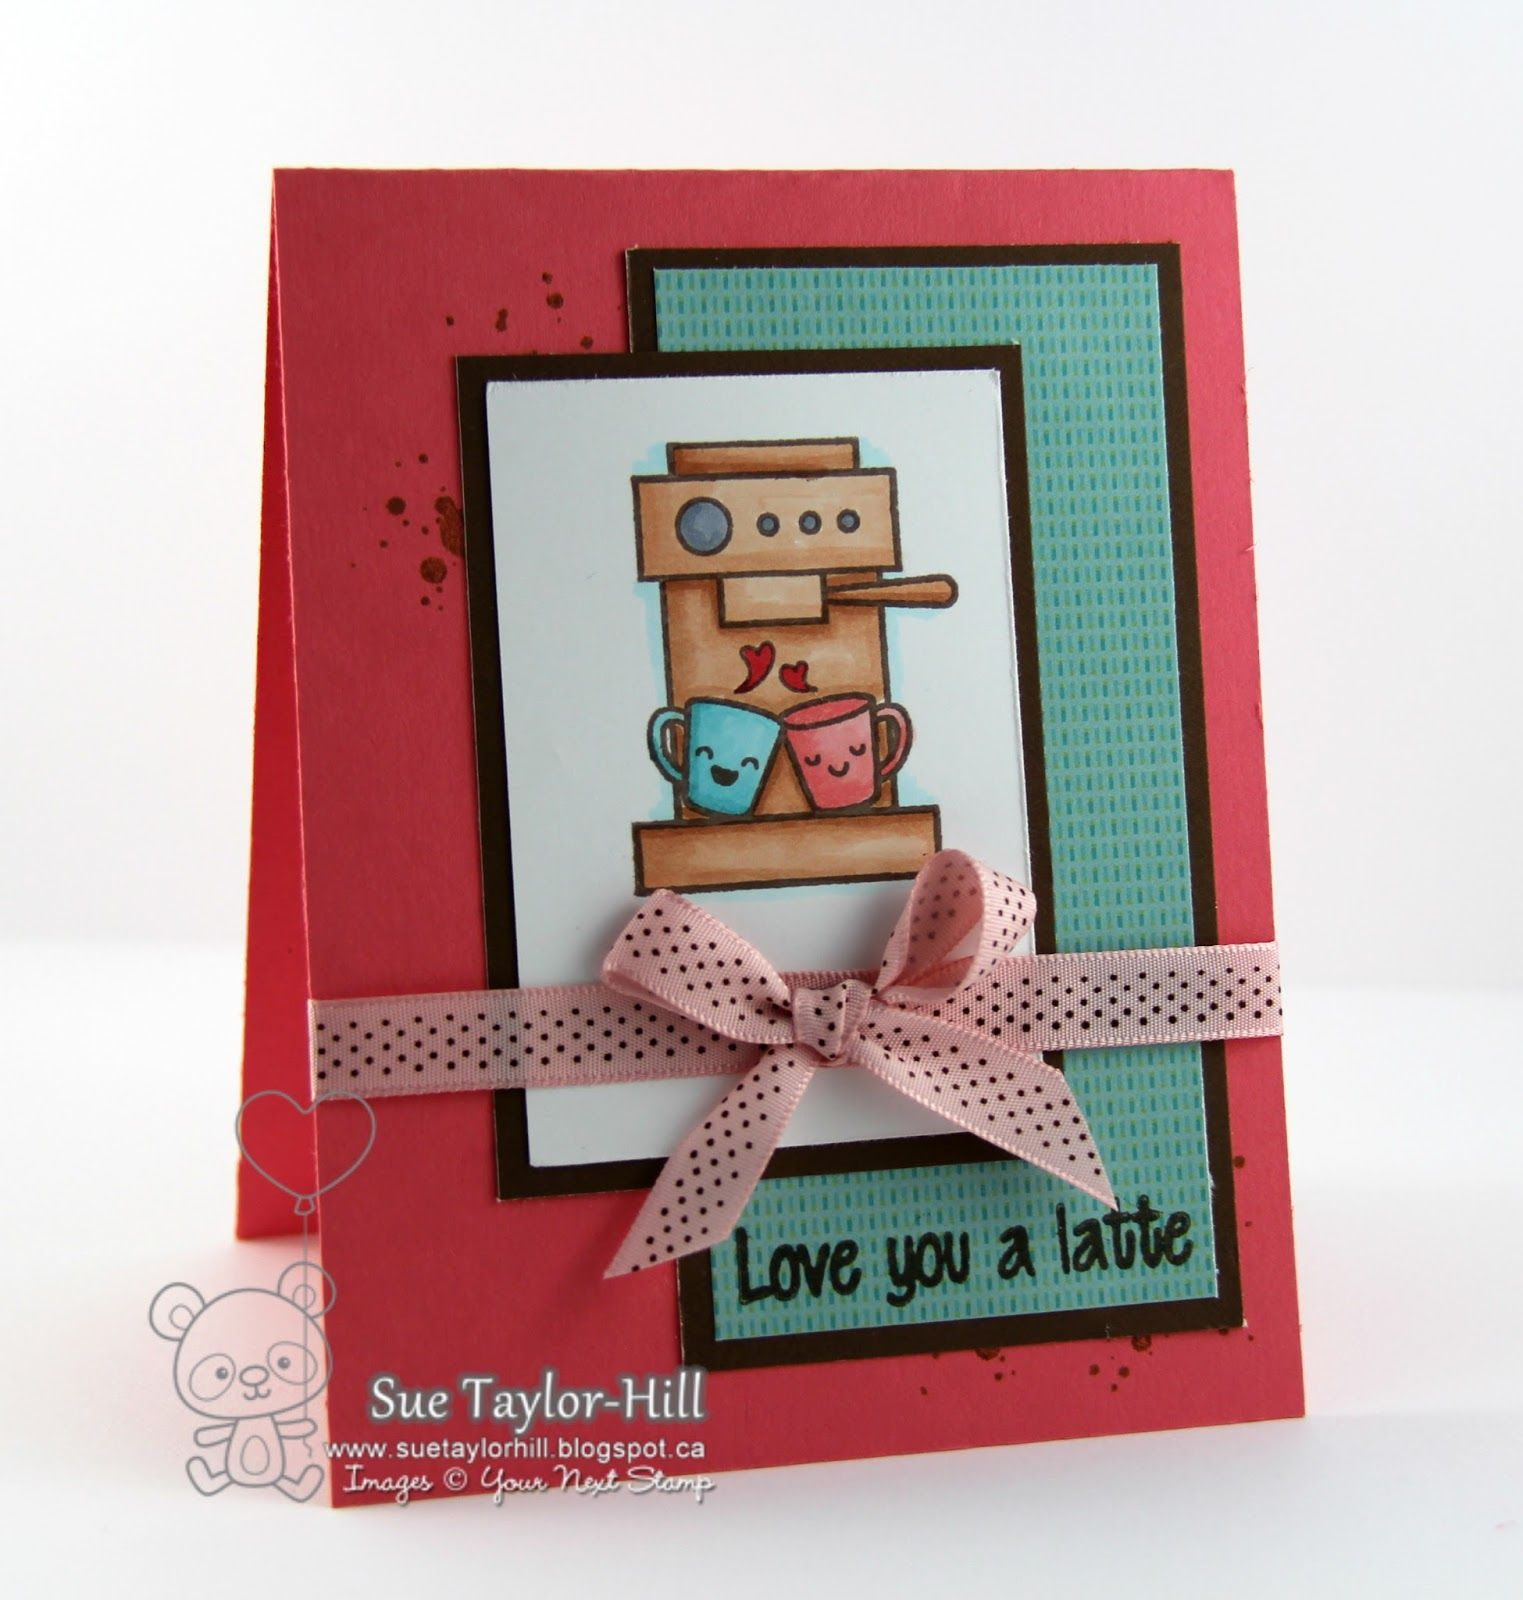 Pin By Sue Taylor-Hill On My YNS Creations- Sue Taylor